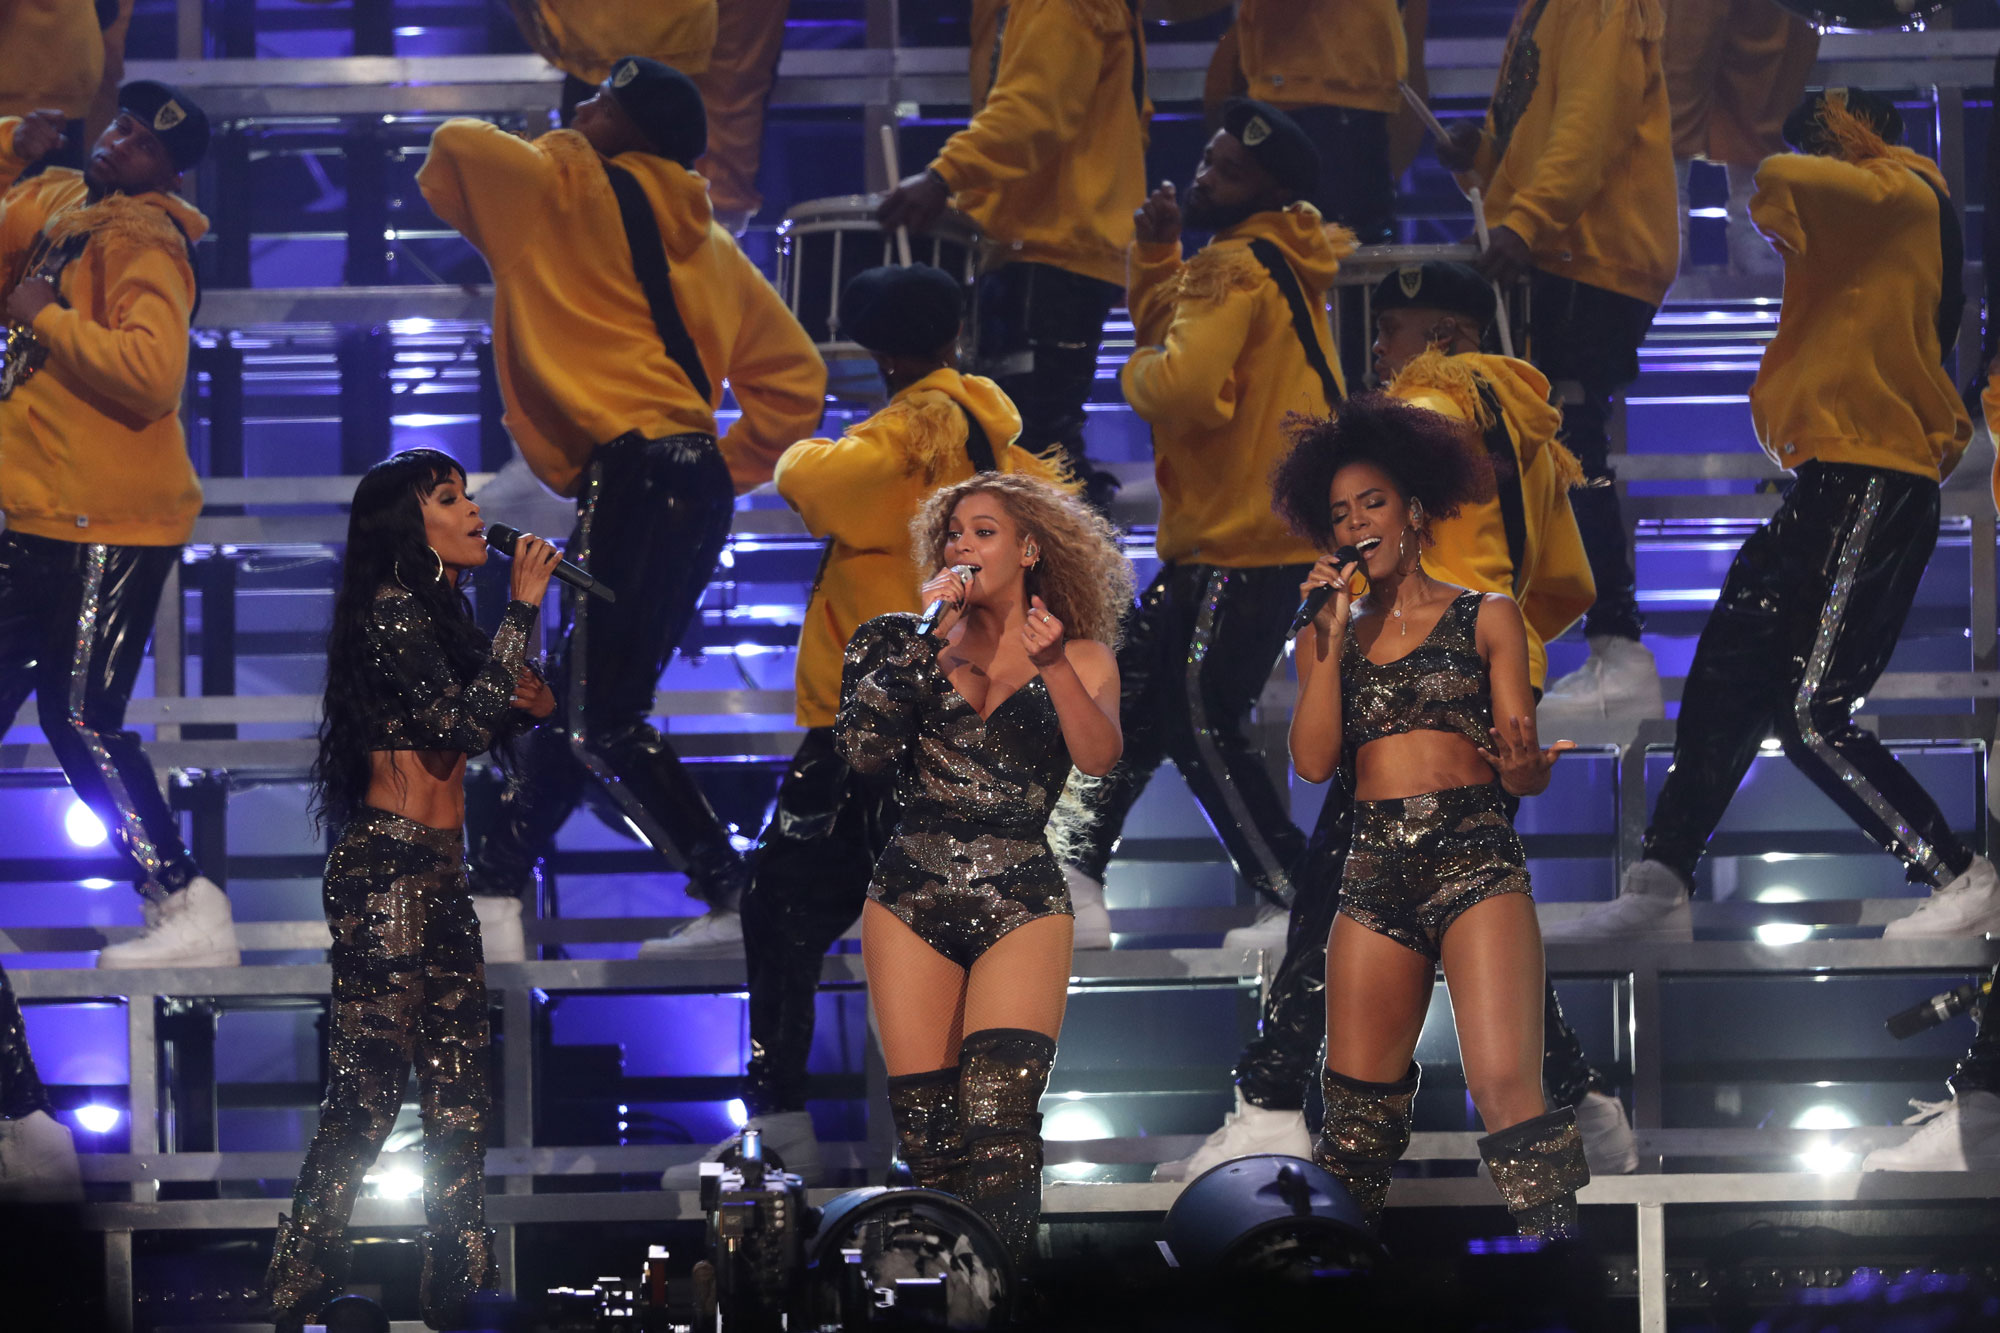 destinys-child-in-custom-balmain-performing-coachella